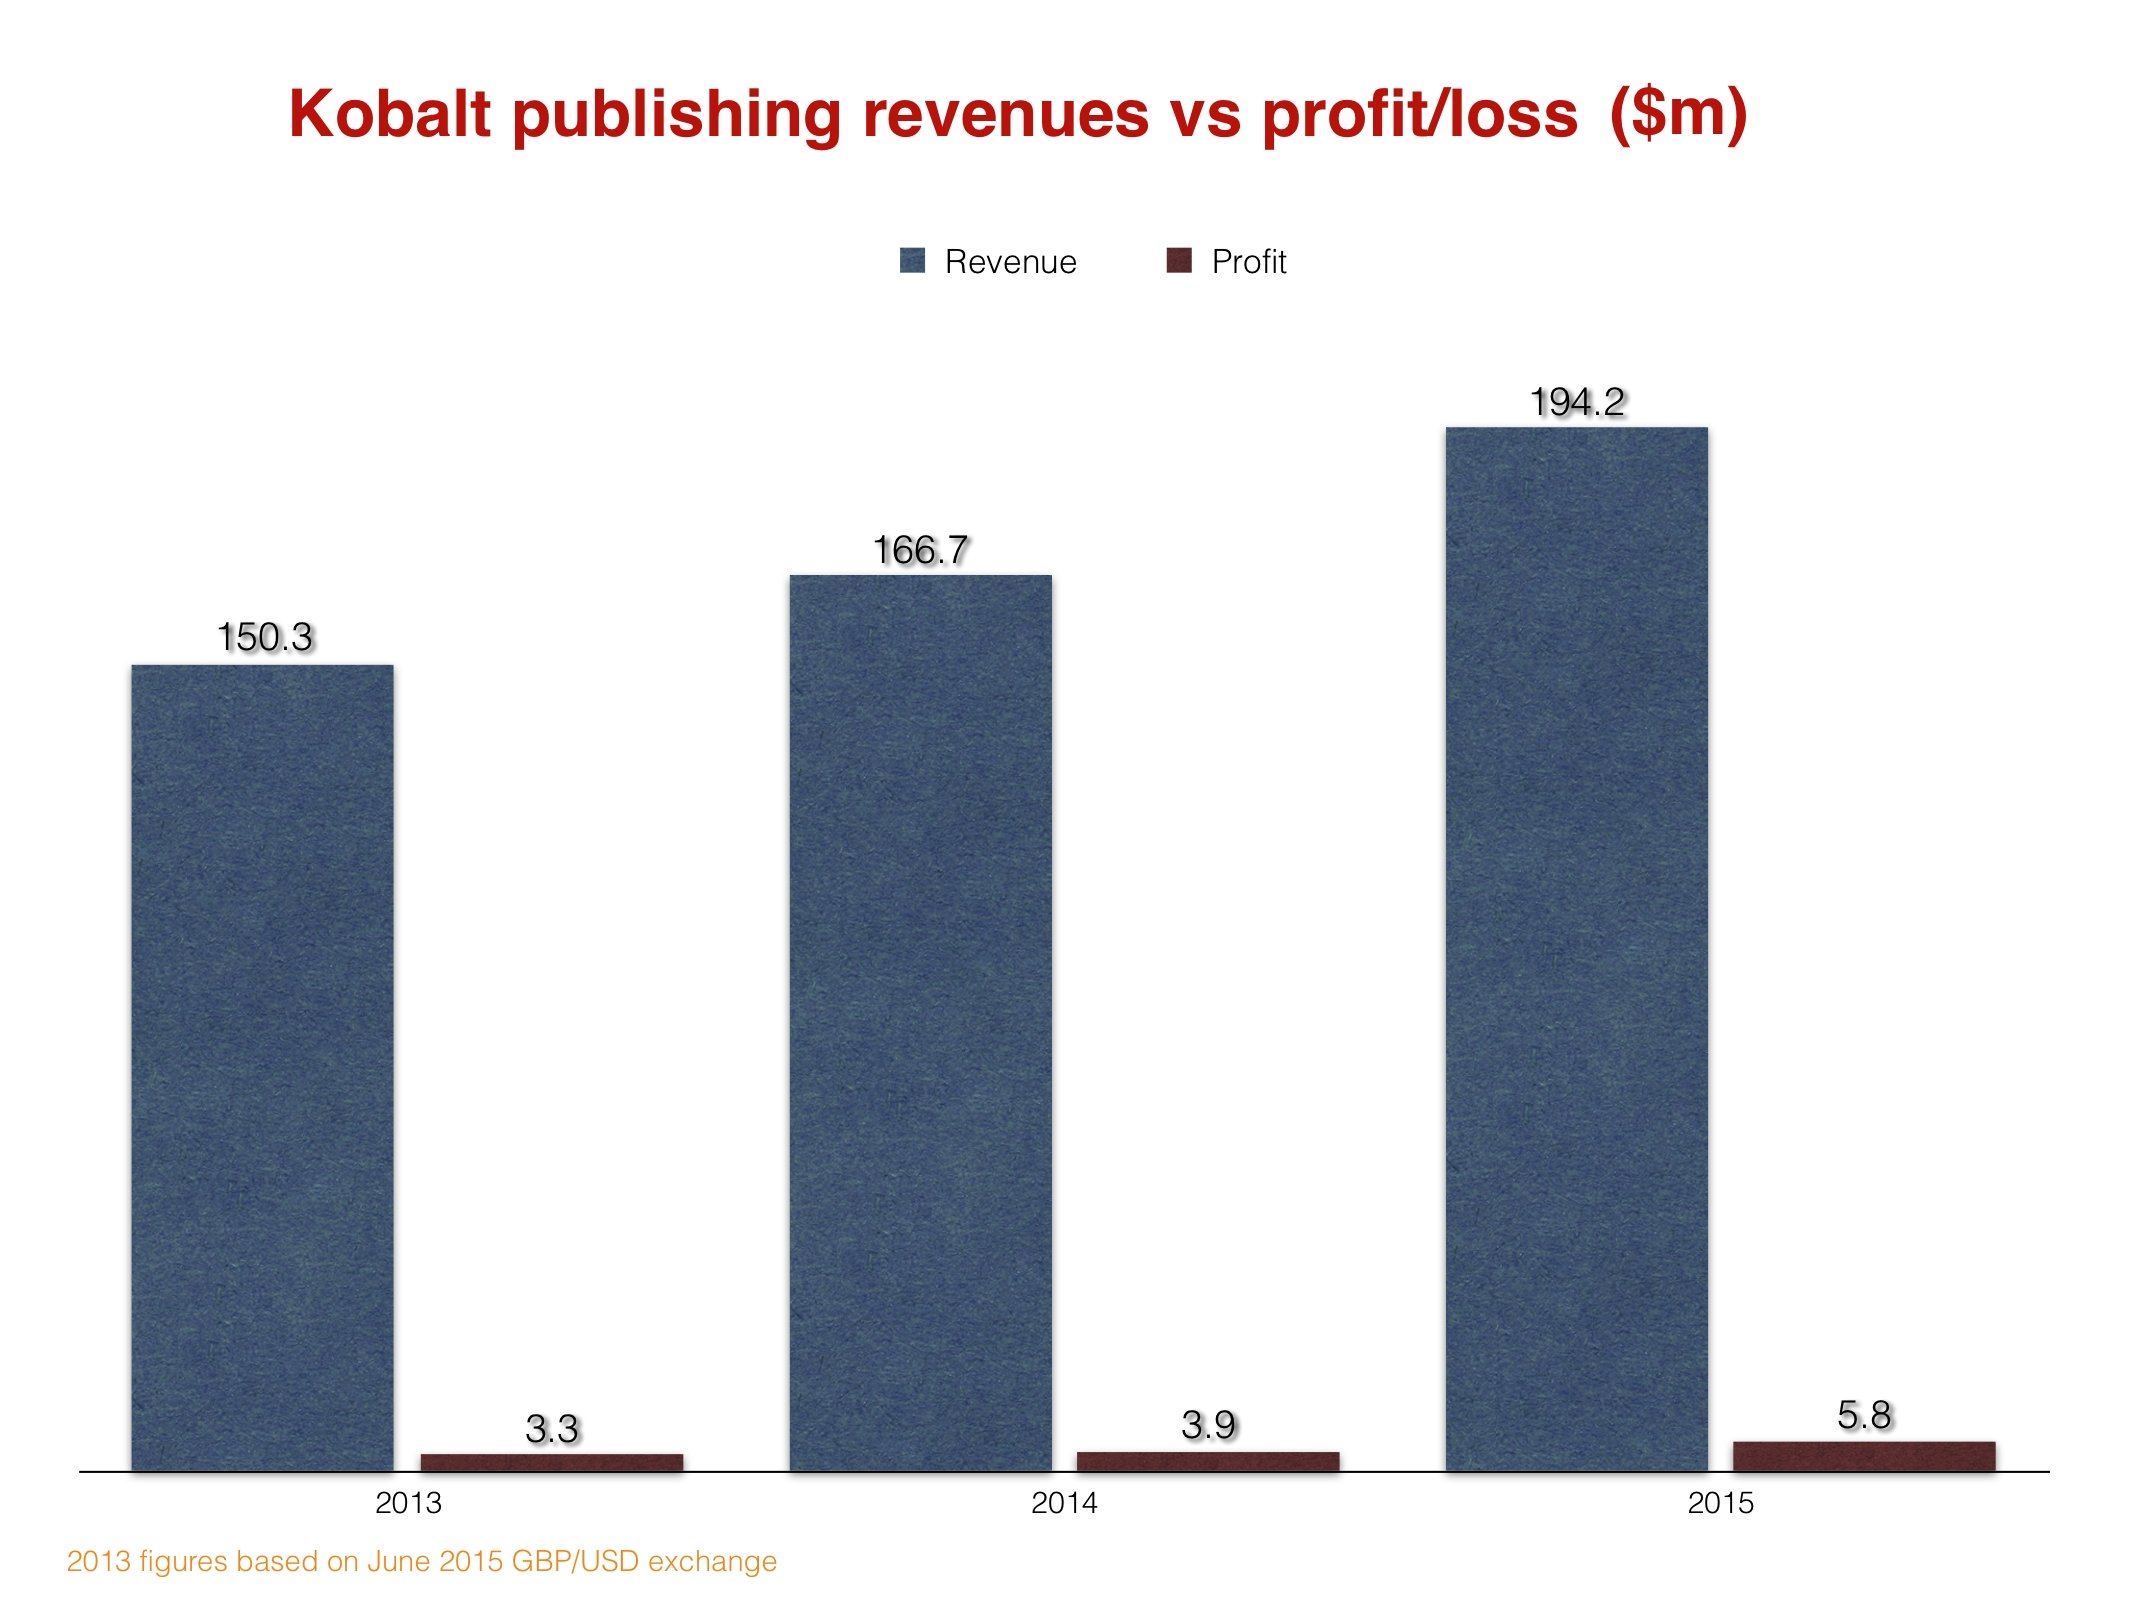 Kobaltpublishing